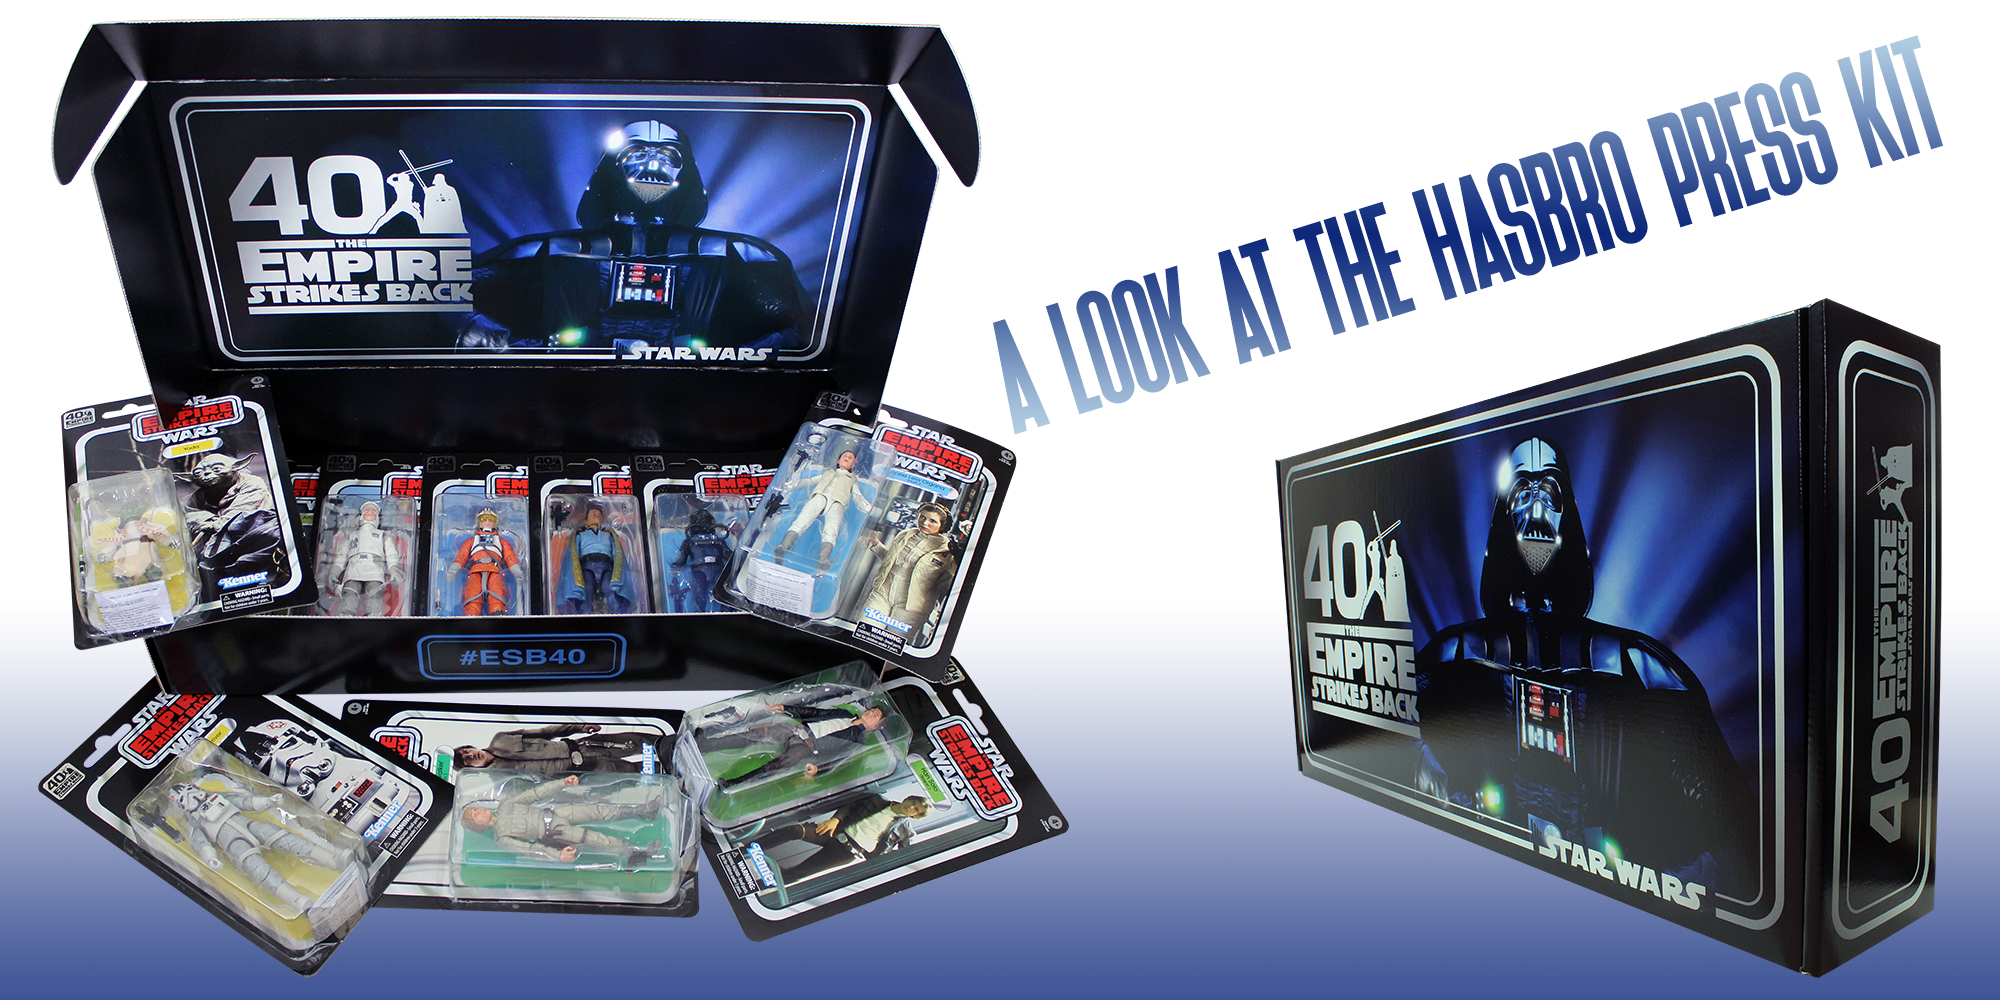 Star Wars The Black Series Press Kit